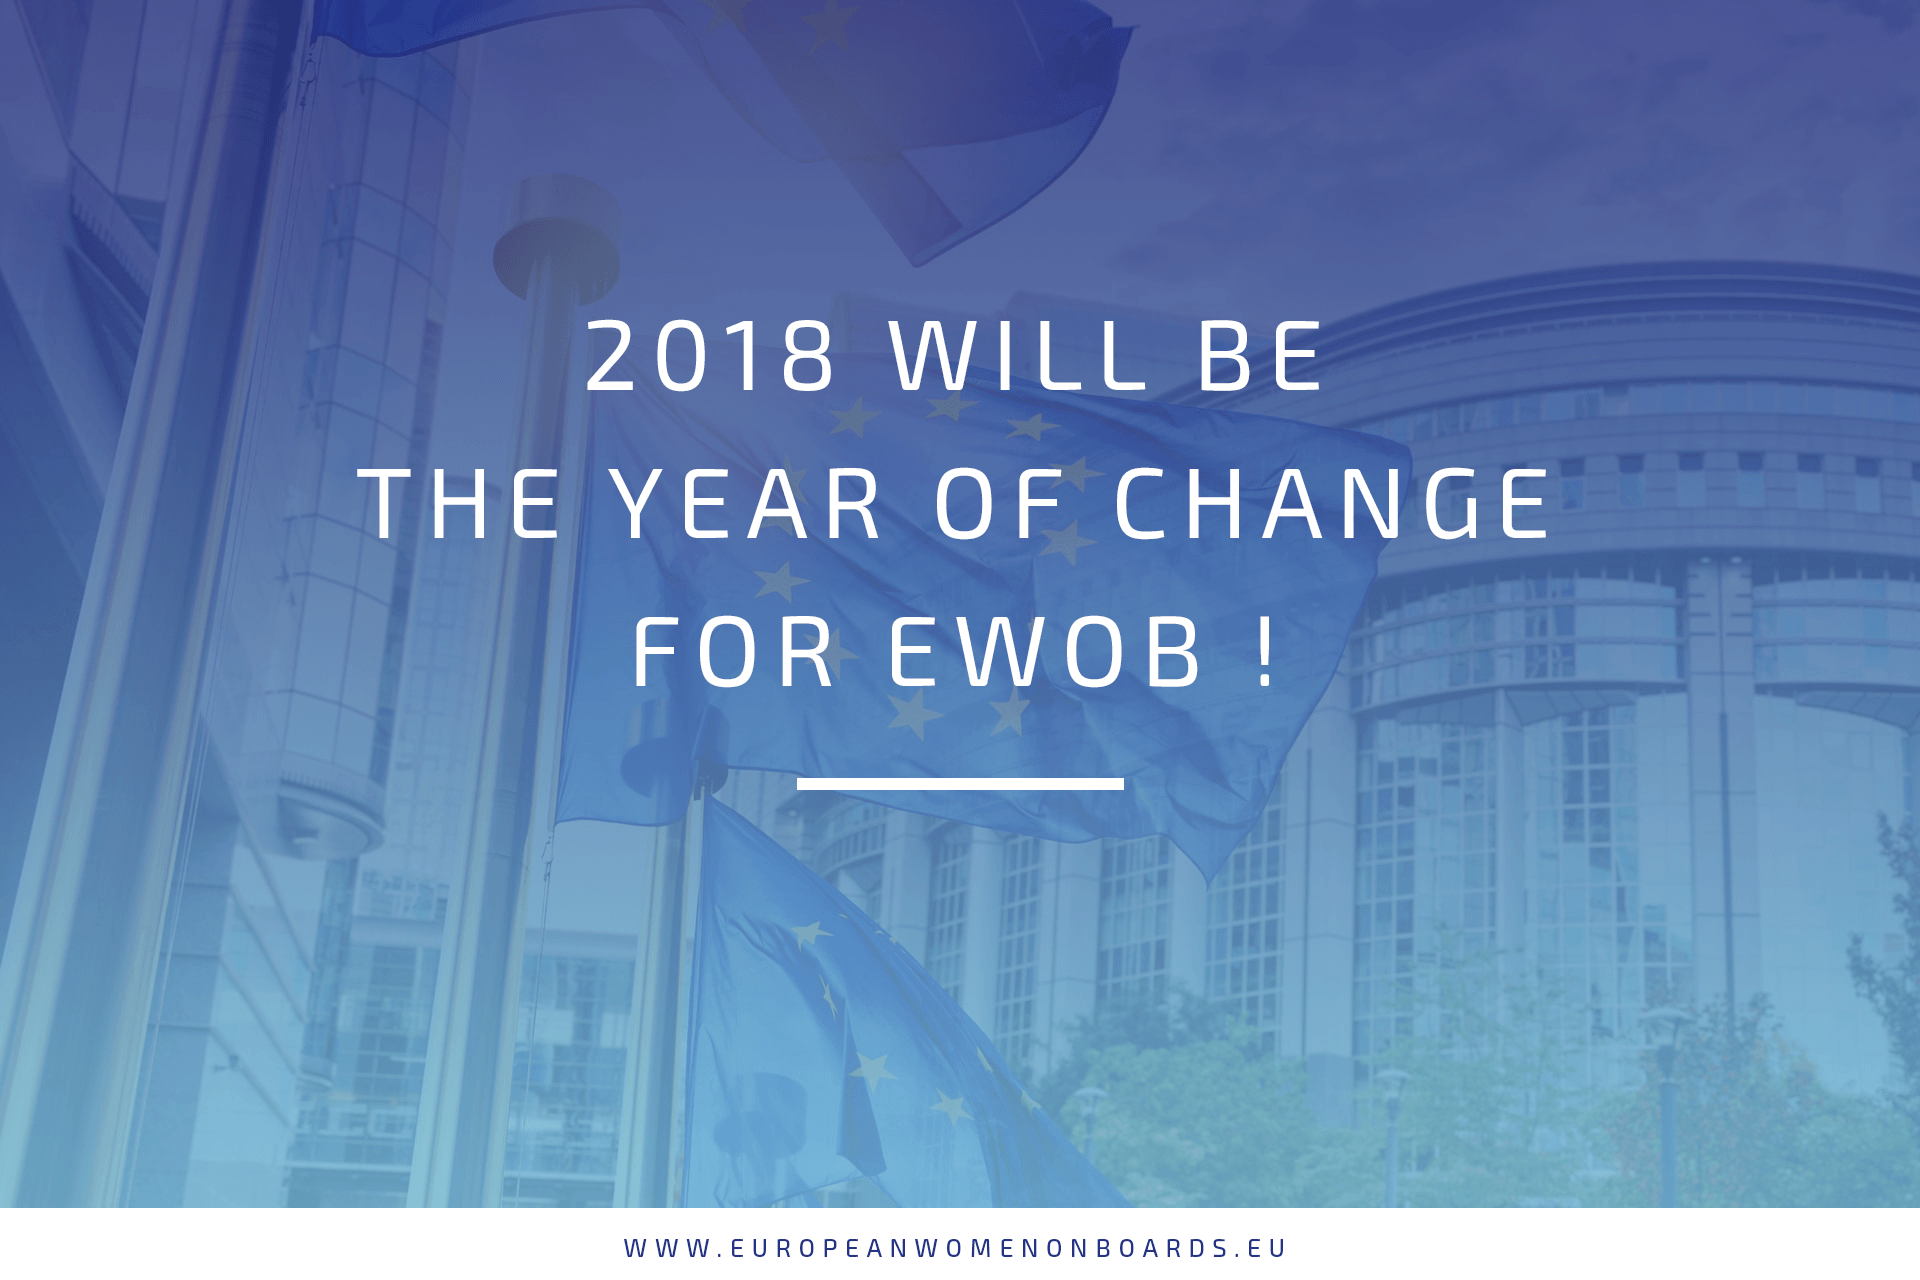 2018 Will Be The Year Of Change For EWoB !